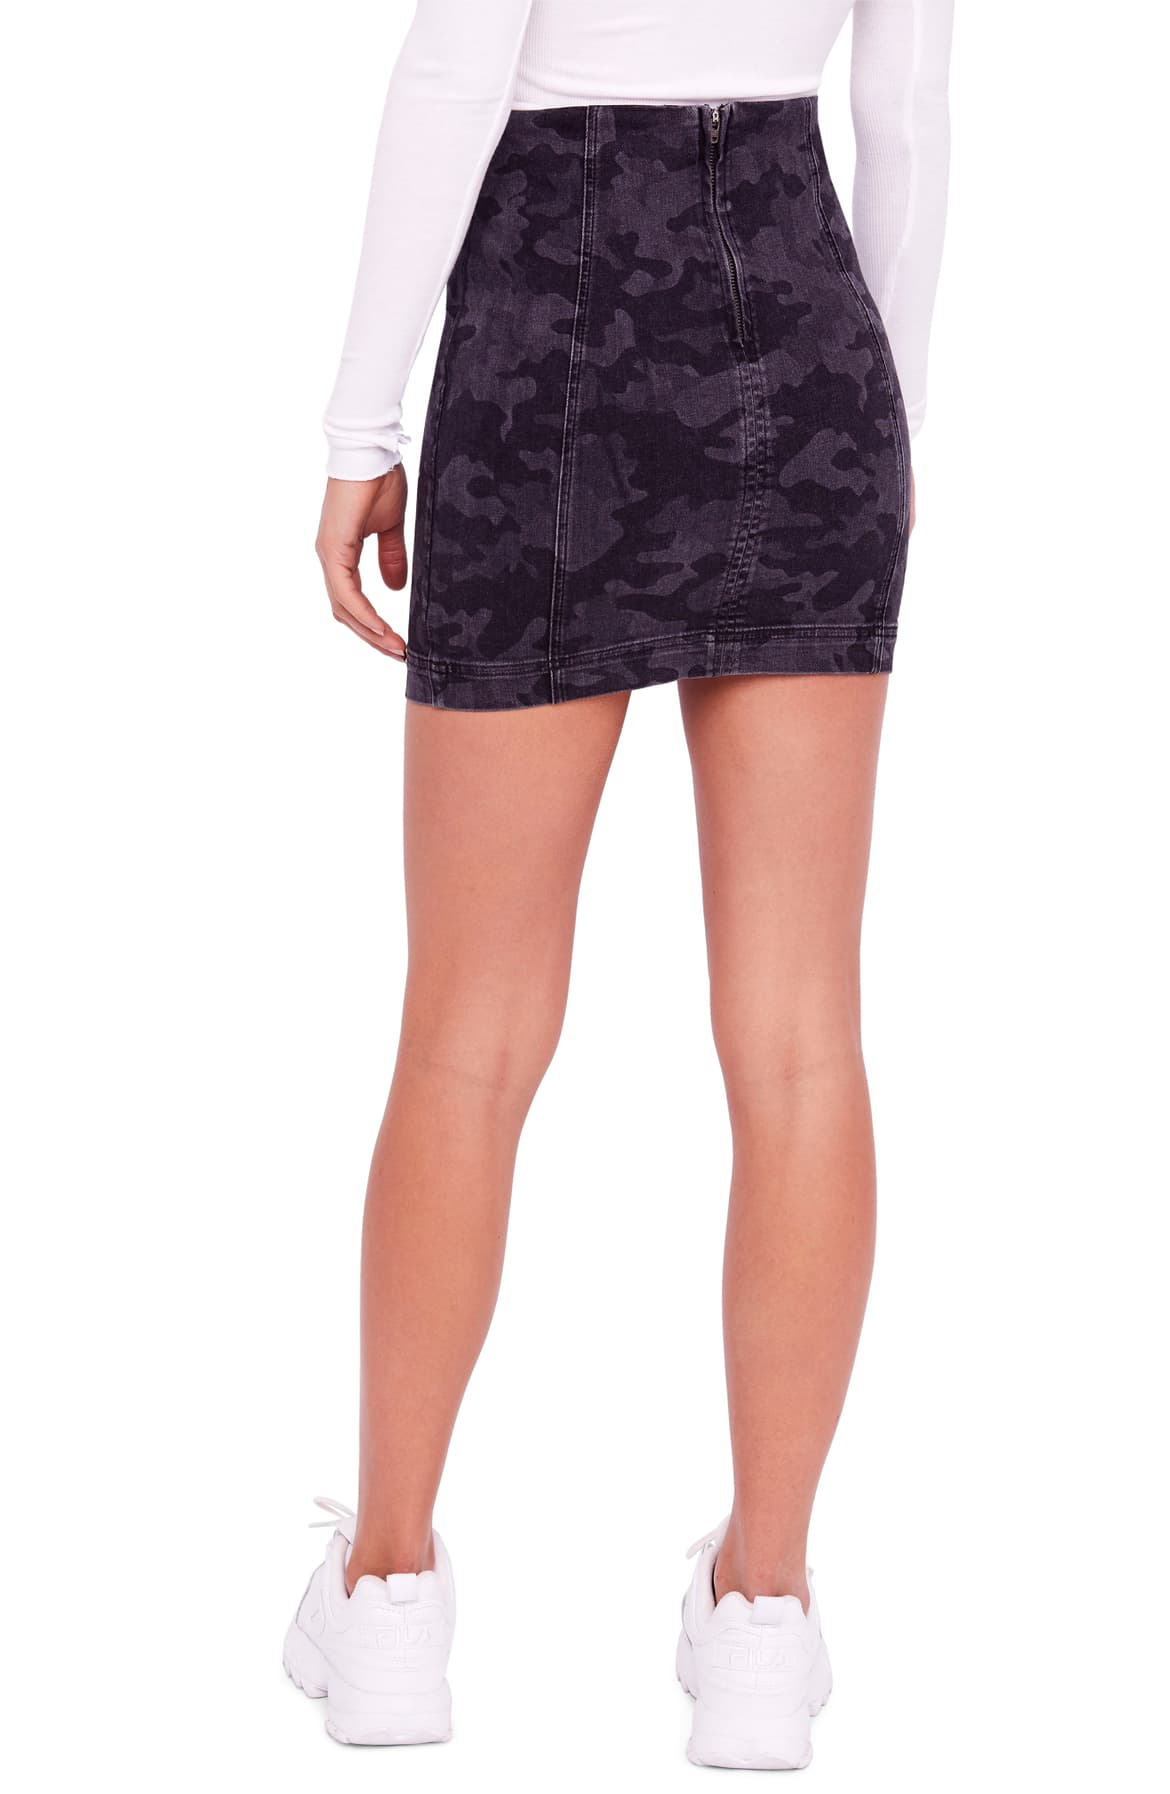 Free People Modern Femme Camouflage-Print Skirt Black Combo 12 - Gear Relapse